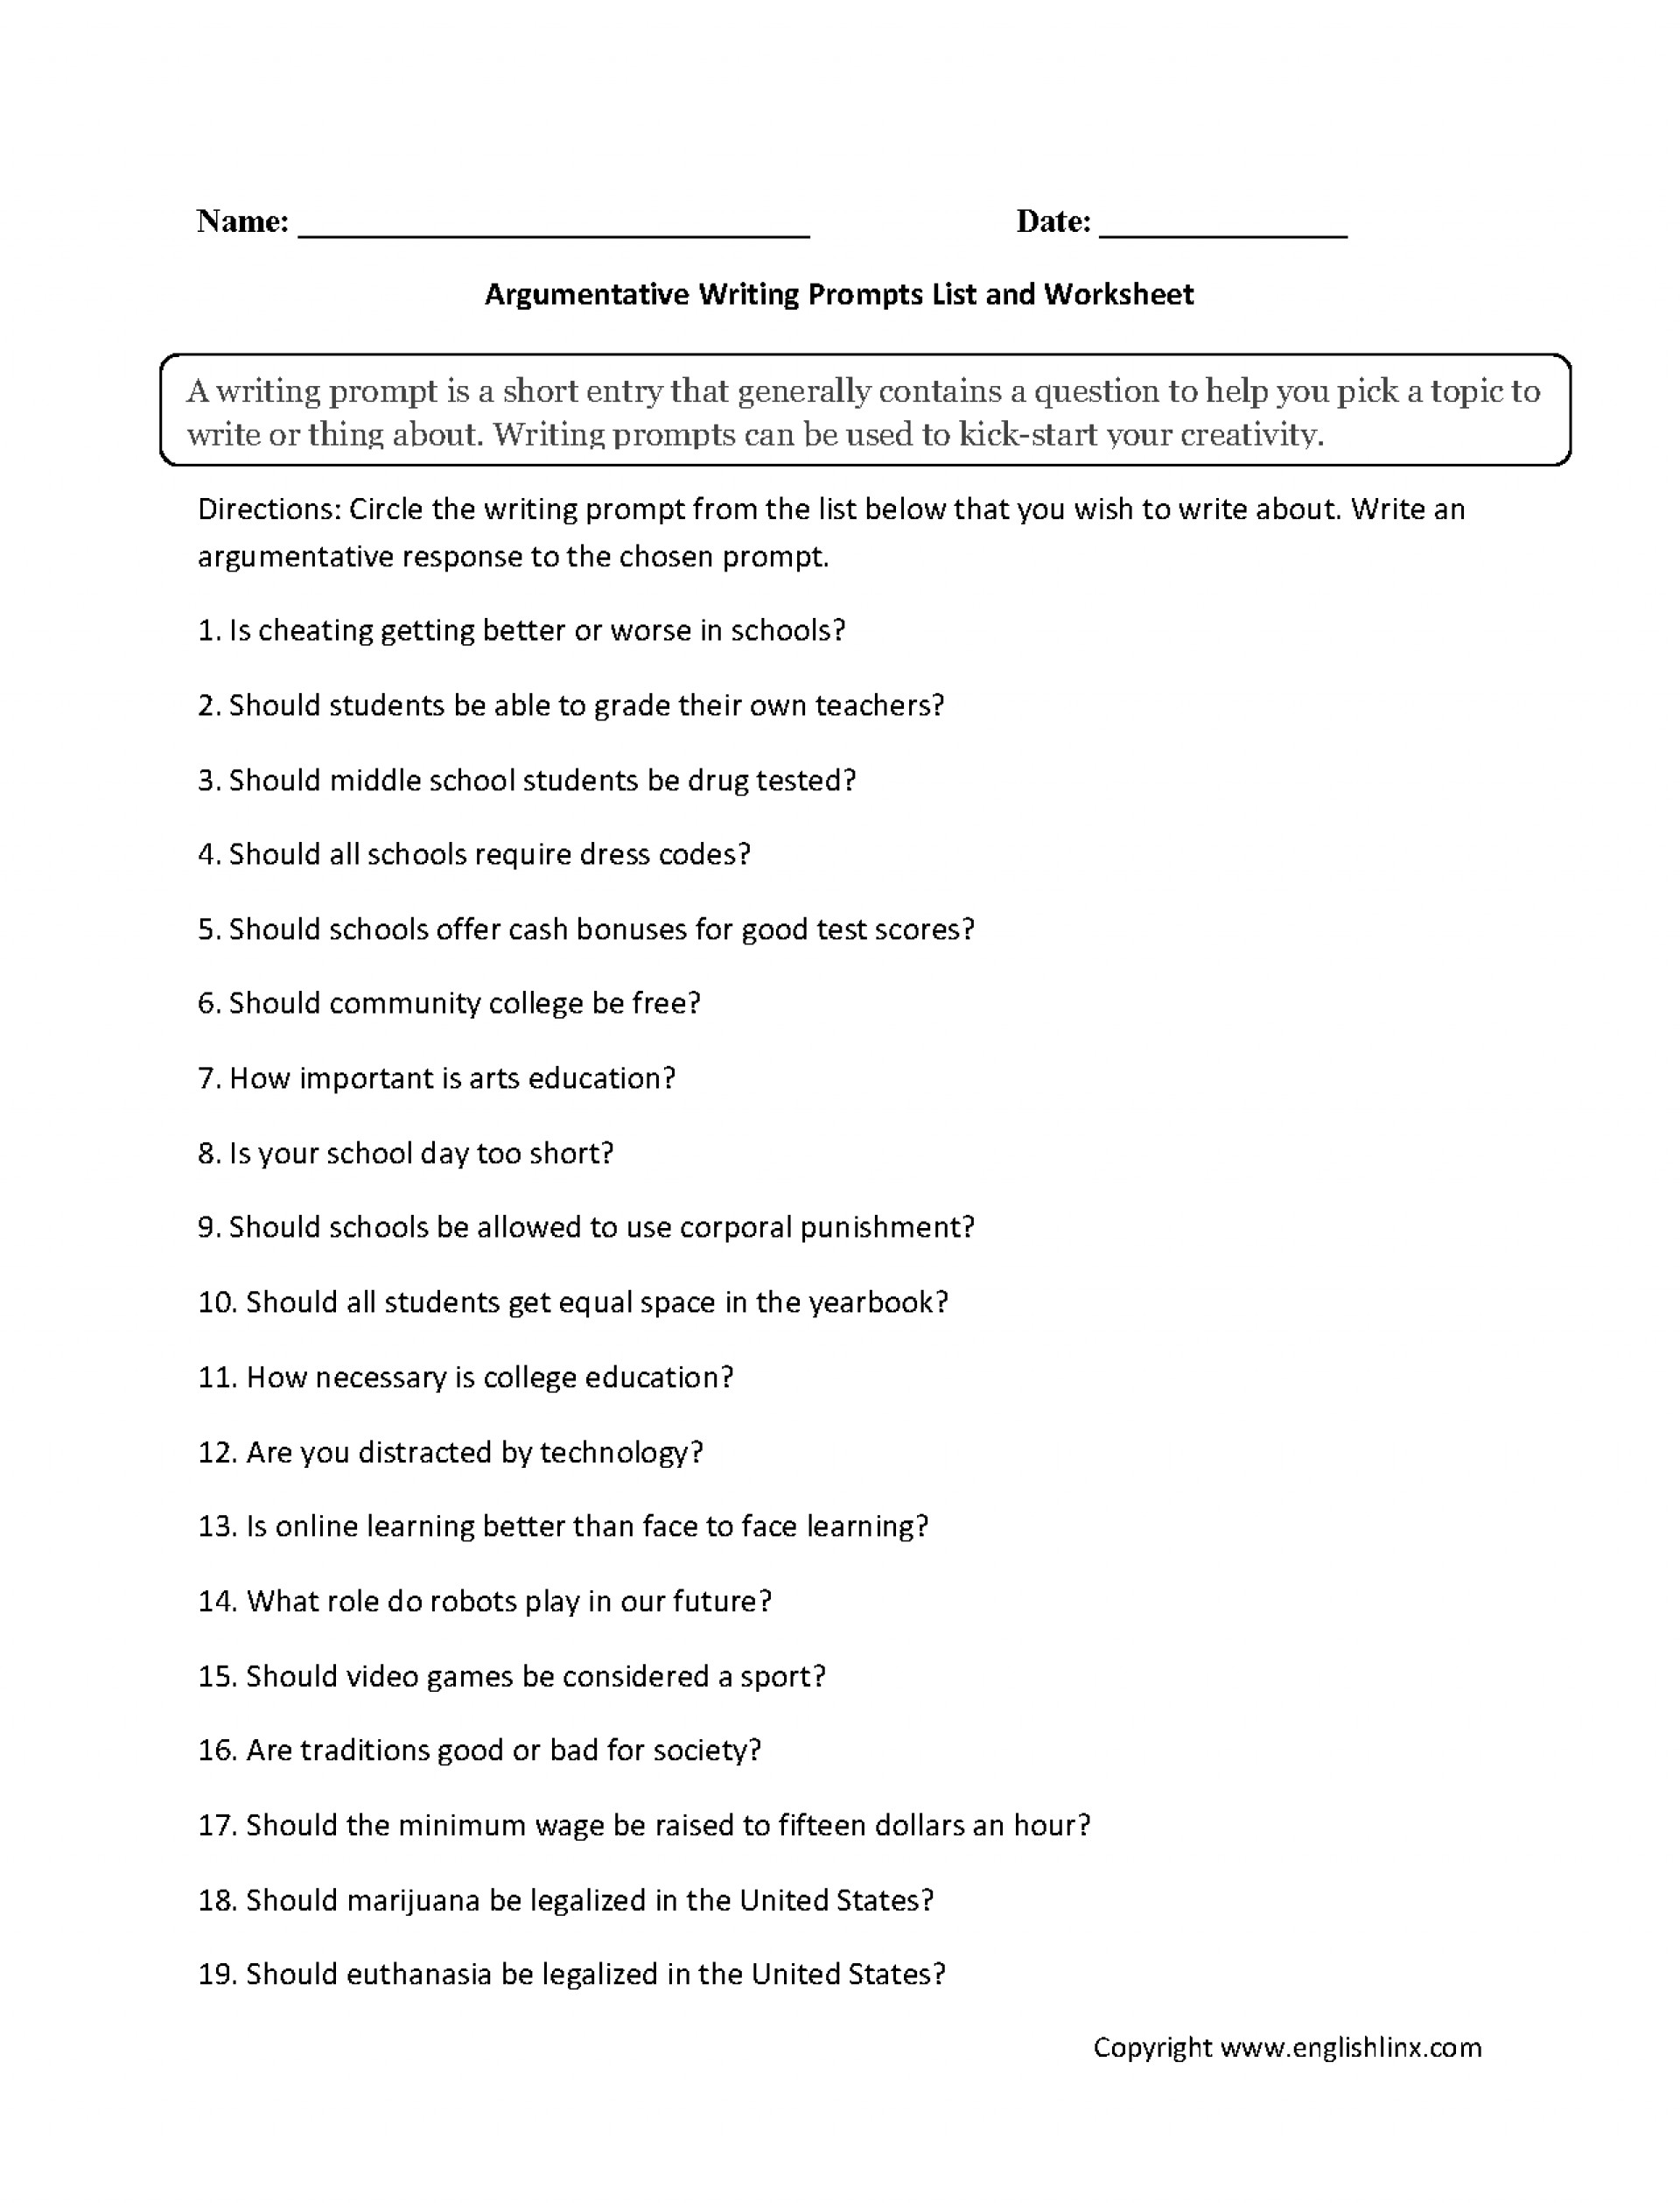 003 Argumentative Writing Prompts List Worksheet Essay Example For Best Essays College Persuasive Opinion 4th Grade 1920